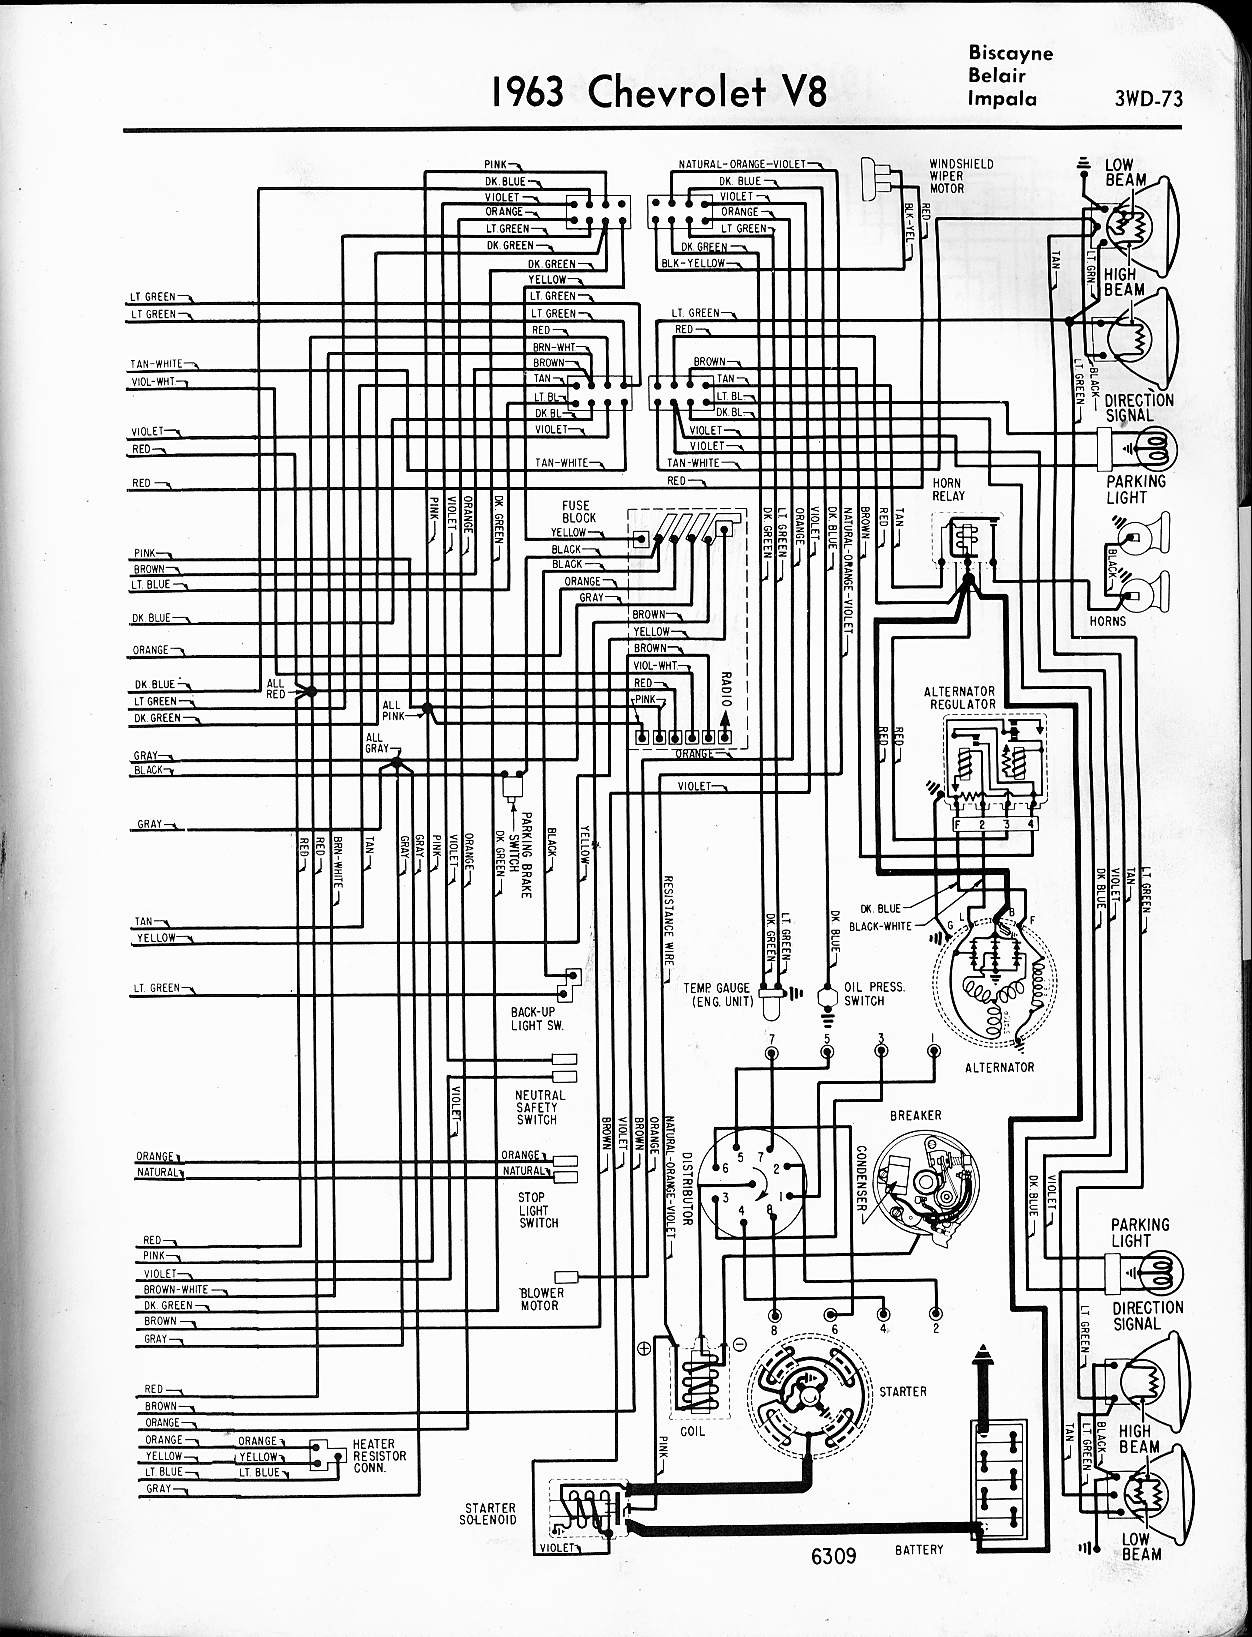 1964 impala wiring harness diagram wiring diagram electricity rh  casamagdalena us 1968 Impala Instrument Cluster Wiring Wiring Harness for 1965  Chevy Impala